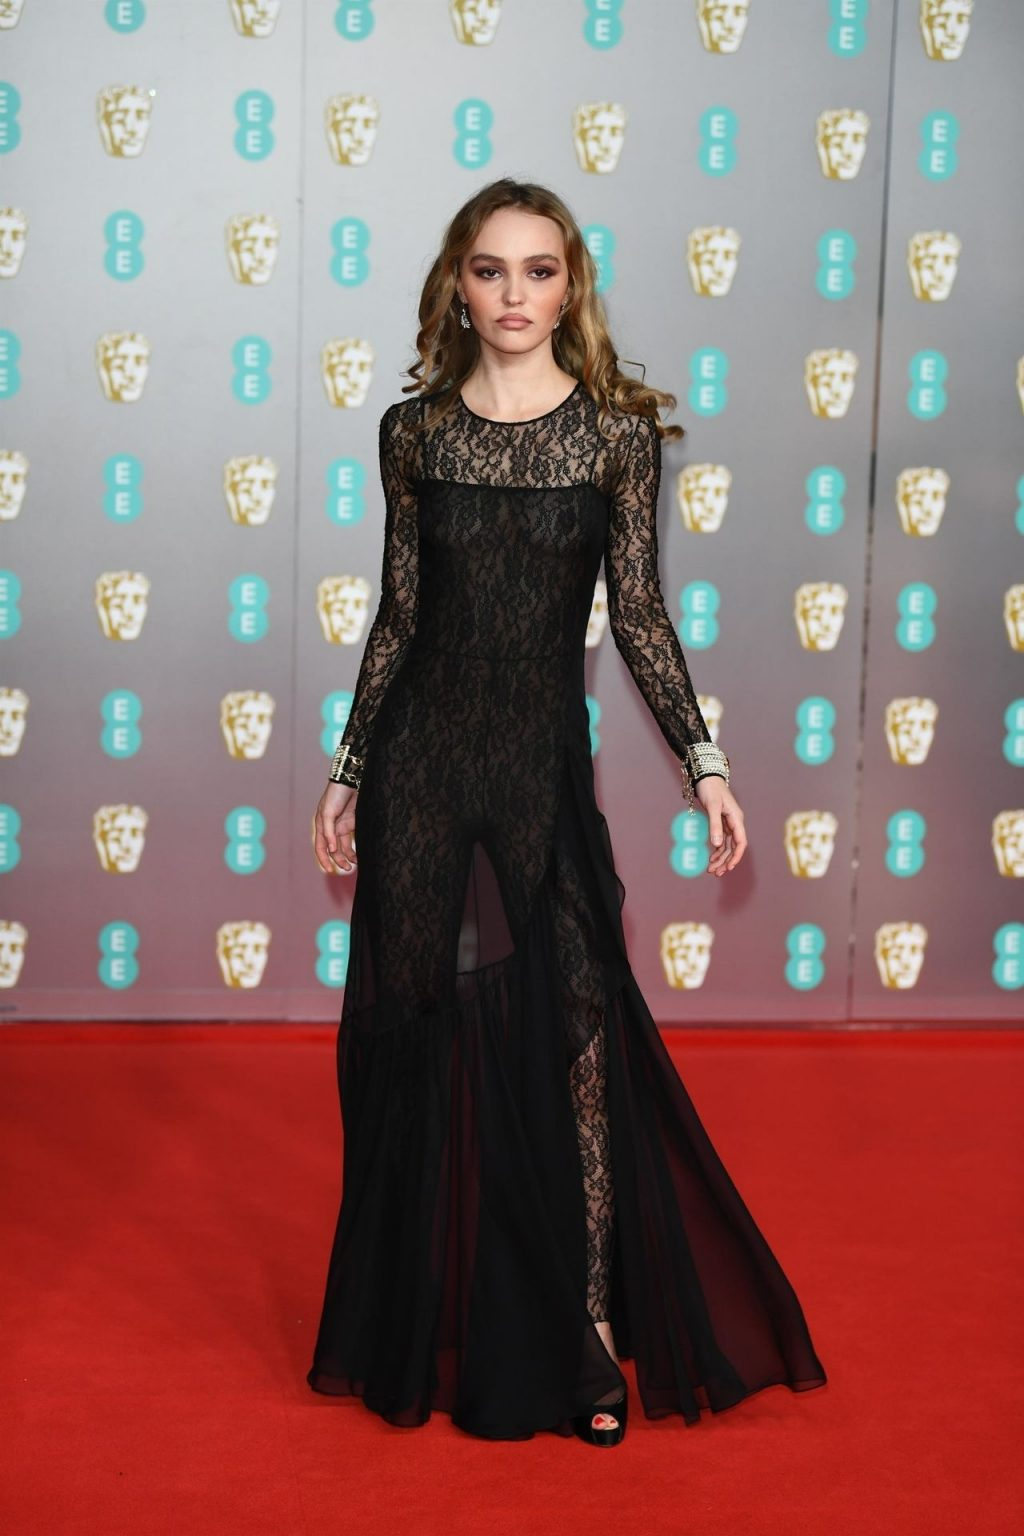 Braless Lily-Rose Depp Attends the 73rd BAFTAs After Party (82 Photos)